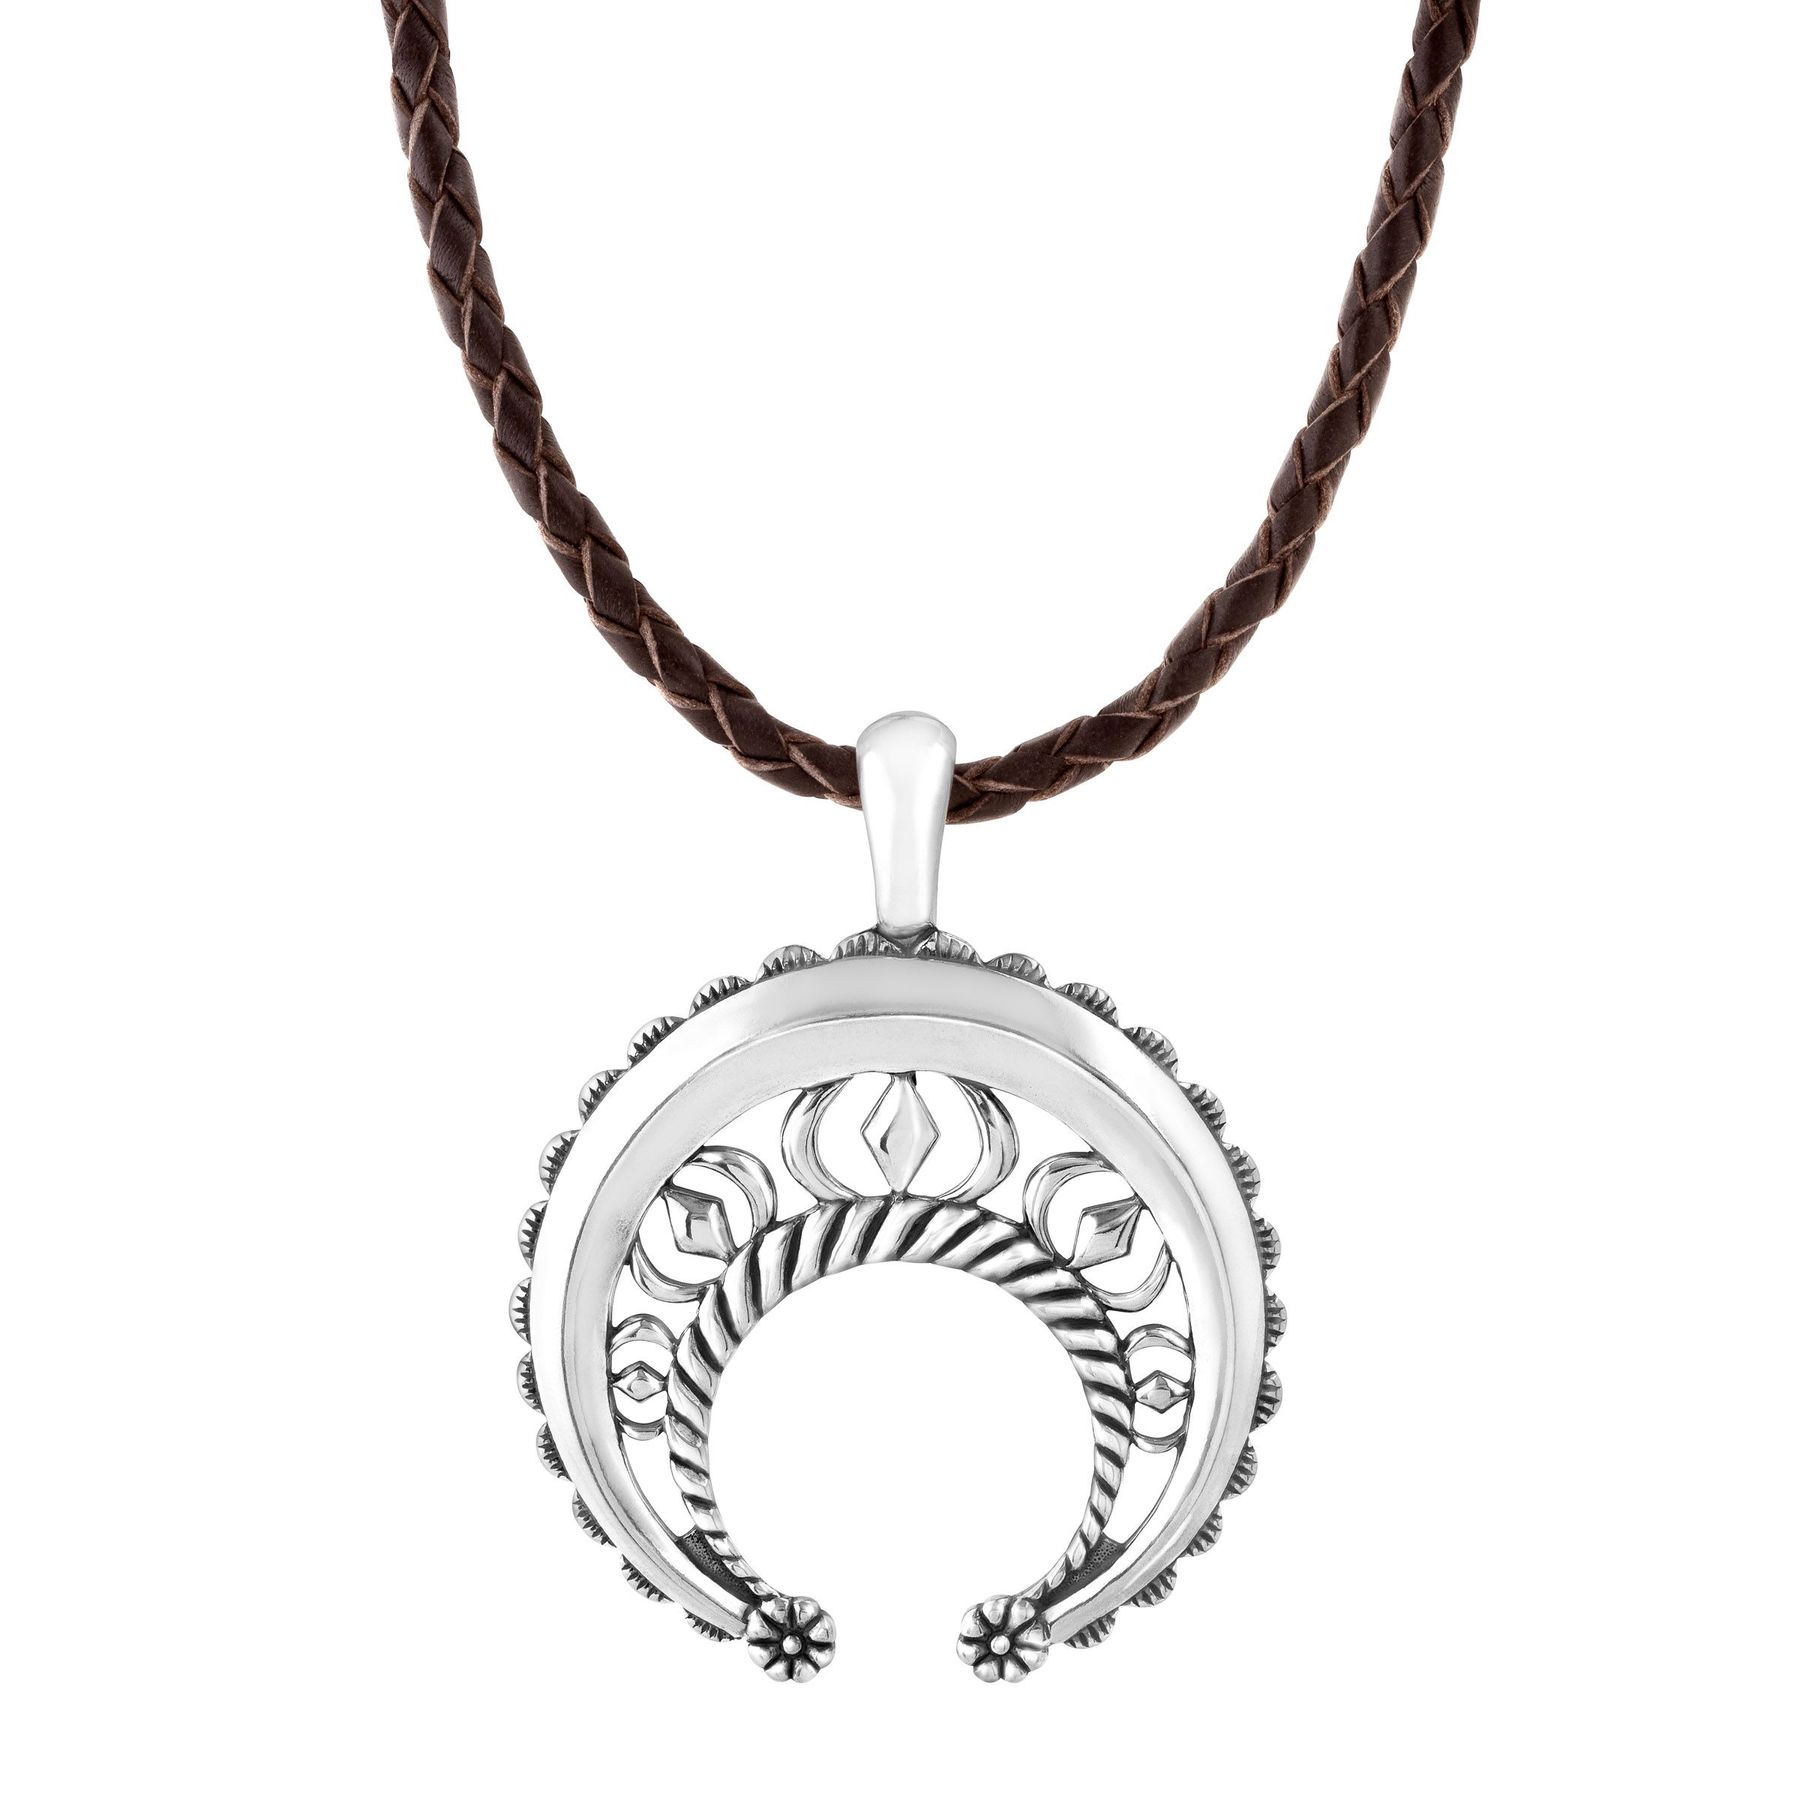 American west naja pendant in sterling silver naja pendant naja pendant aloadofball Images